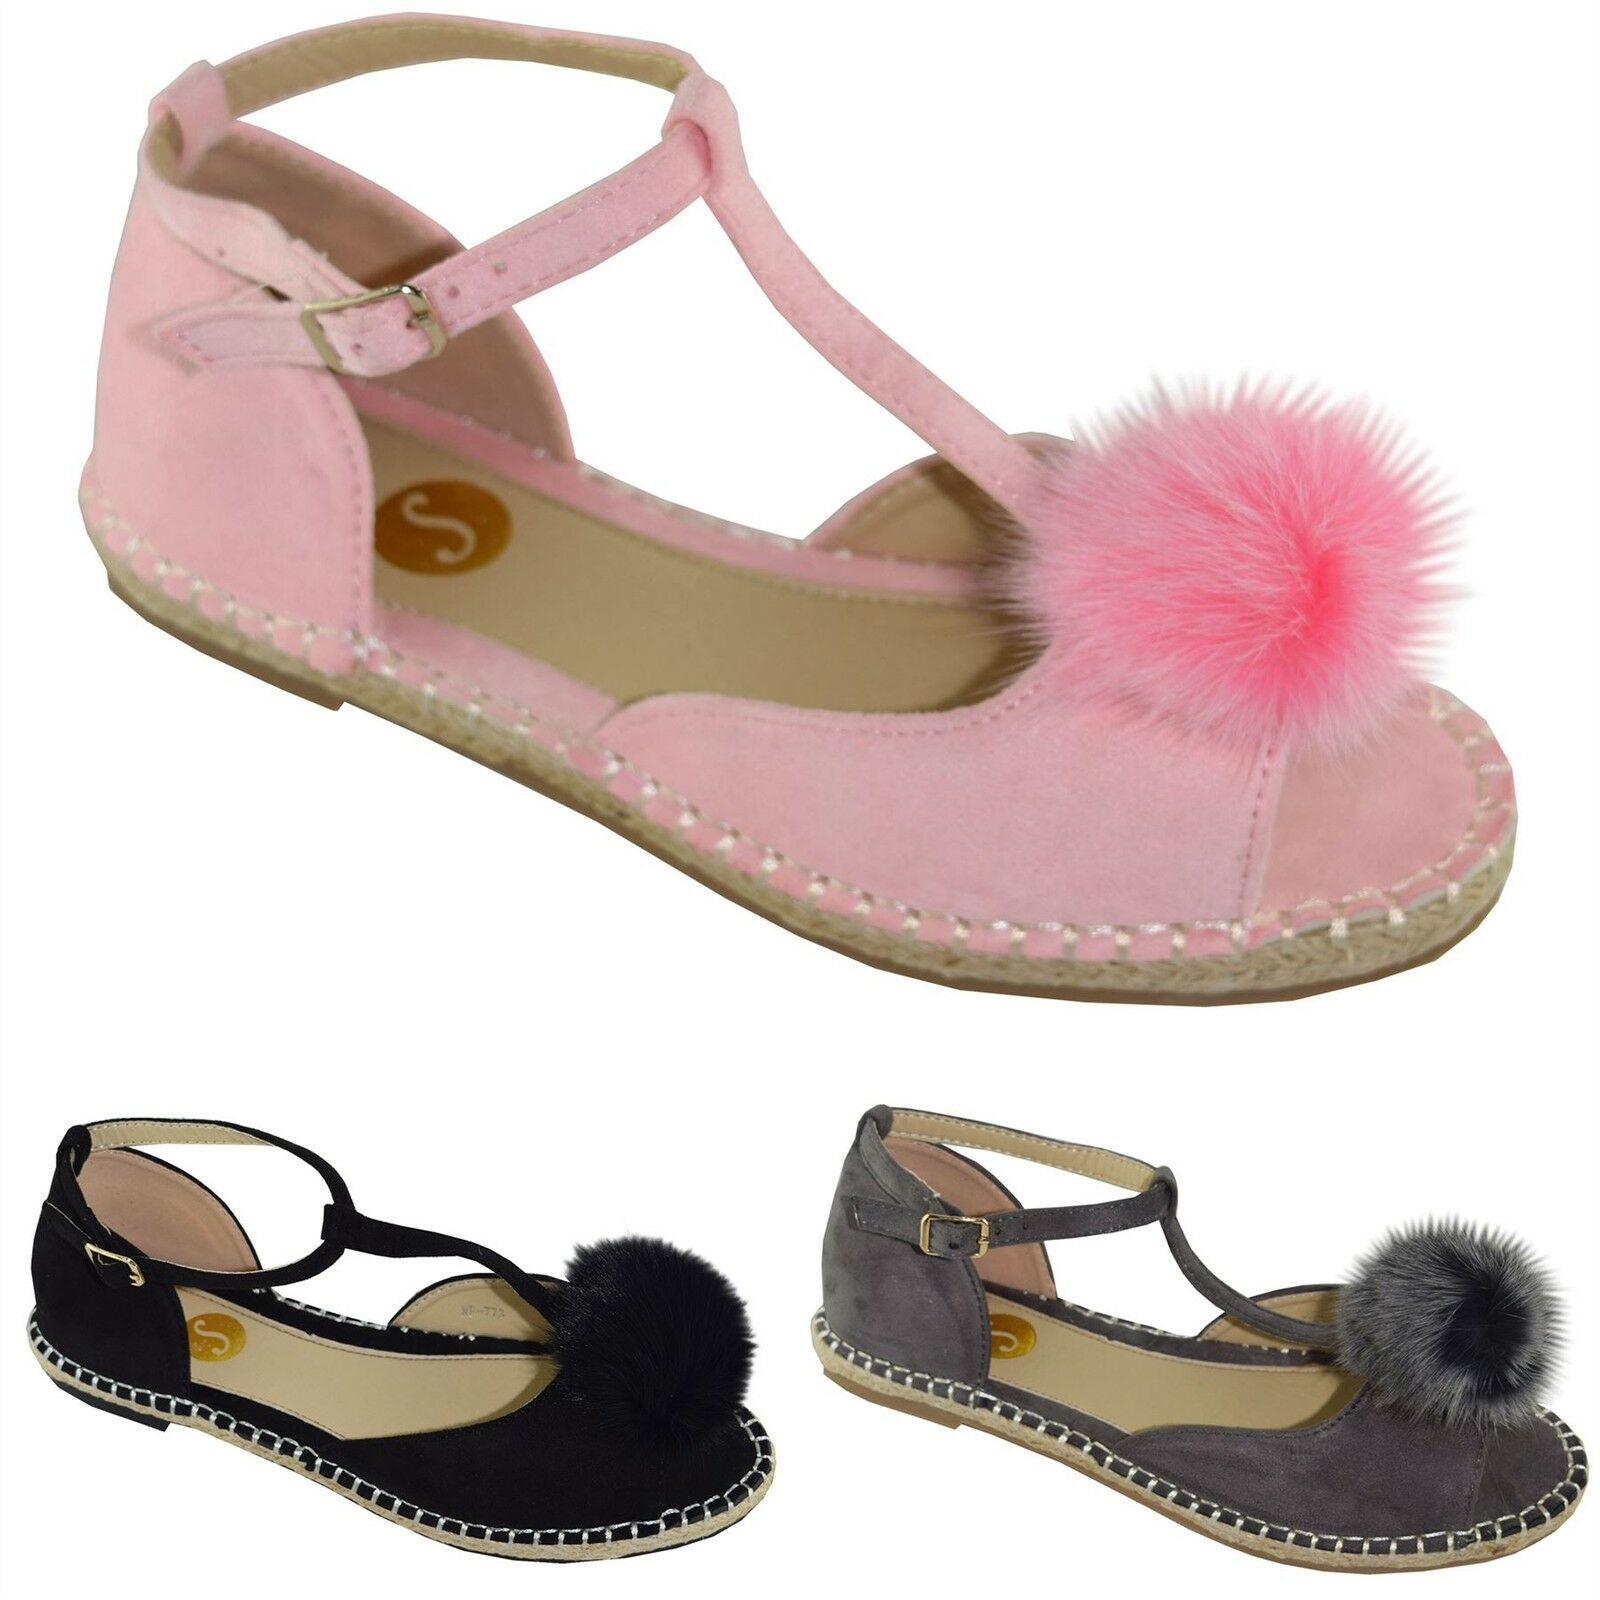 New Fur Ladies Mujer Peeptoe Sandals Flat Fur New PomPom T-Bar Espadrilles Pumps zapatos 07e665